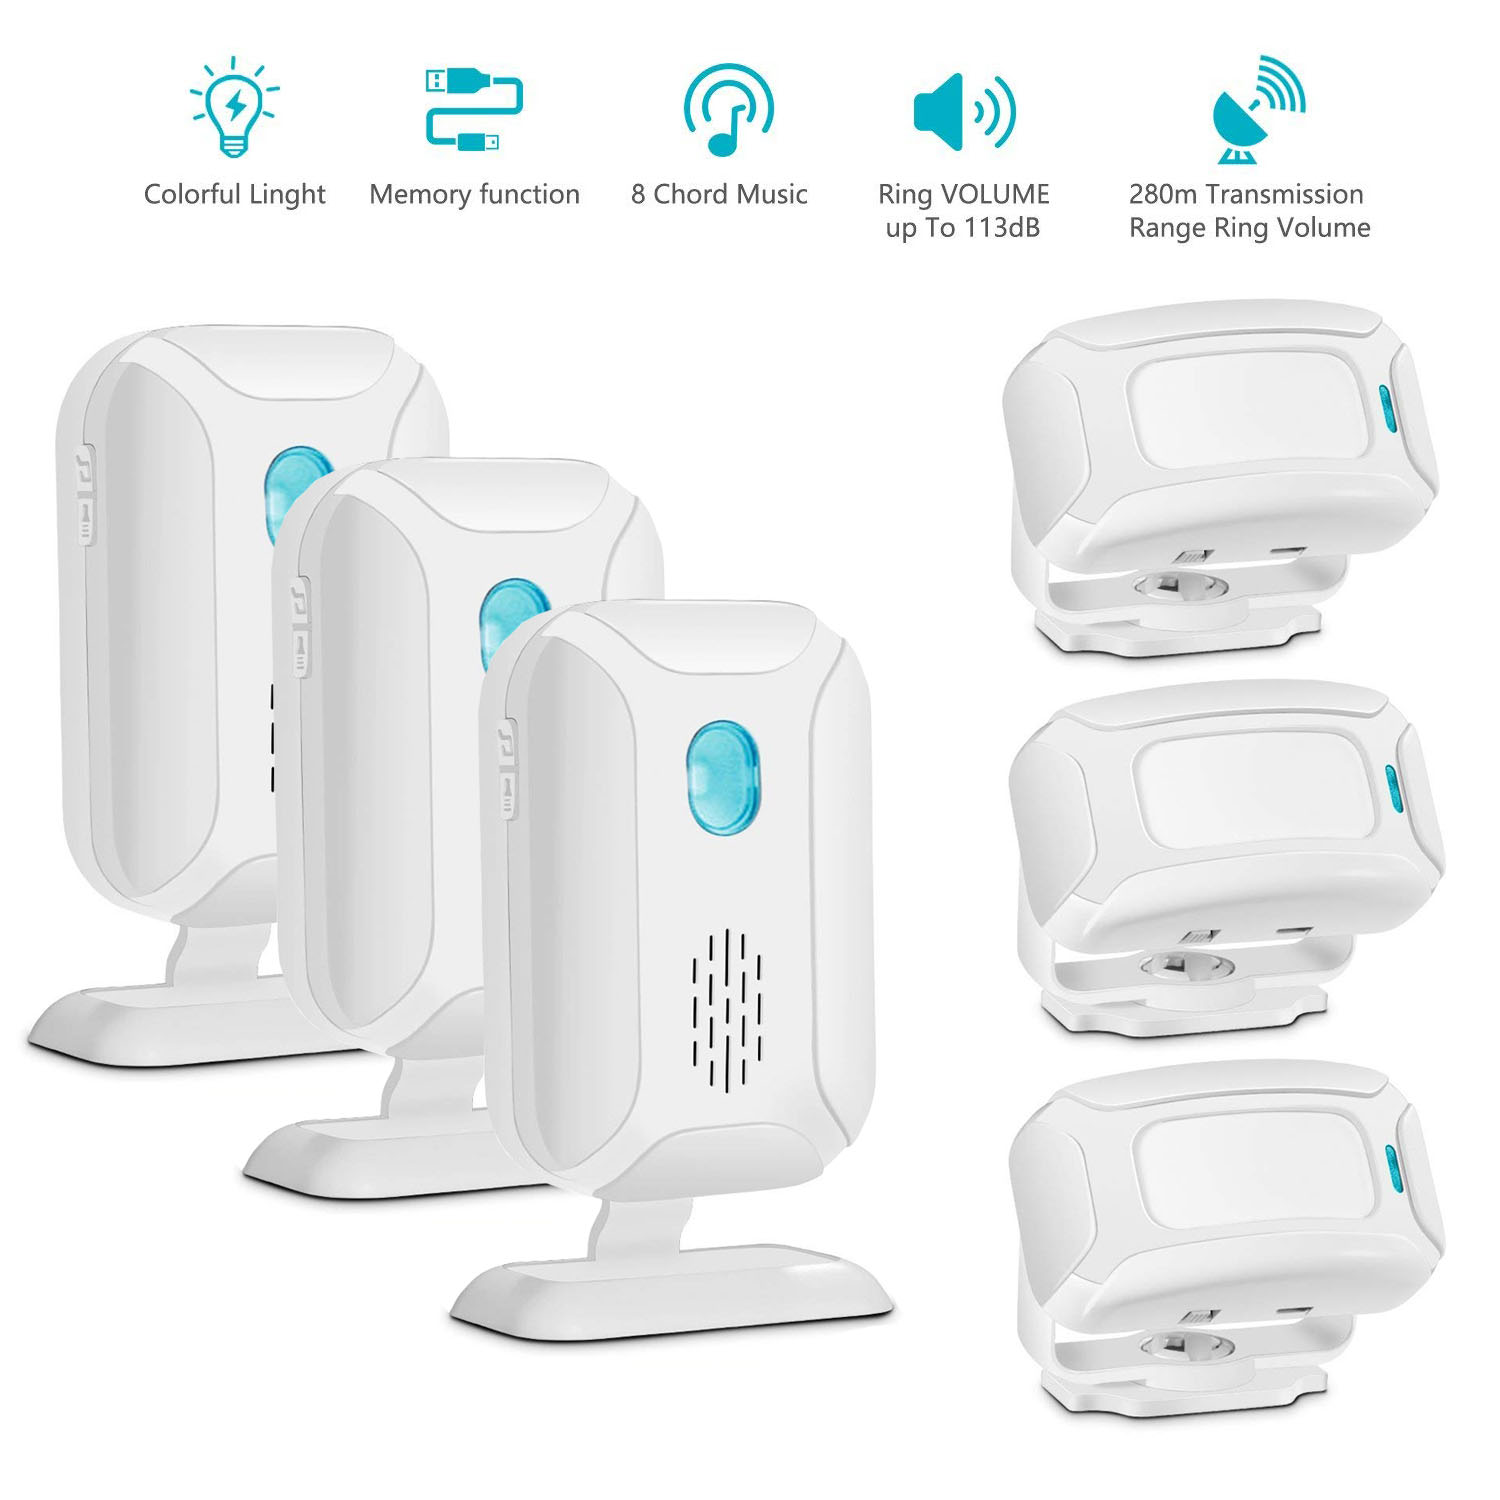 GREENCYCLE 3 Set (3 Sensor,3 Alarm) Muti-function Wireless Welcome Warning Greeting Doorbell PIR Motion Detector Sensor Visitor Alarm Chime Door Bell Infrared Security Smart Entry Alert System Kit